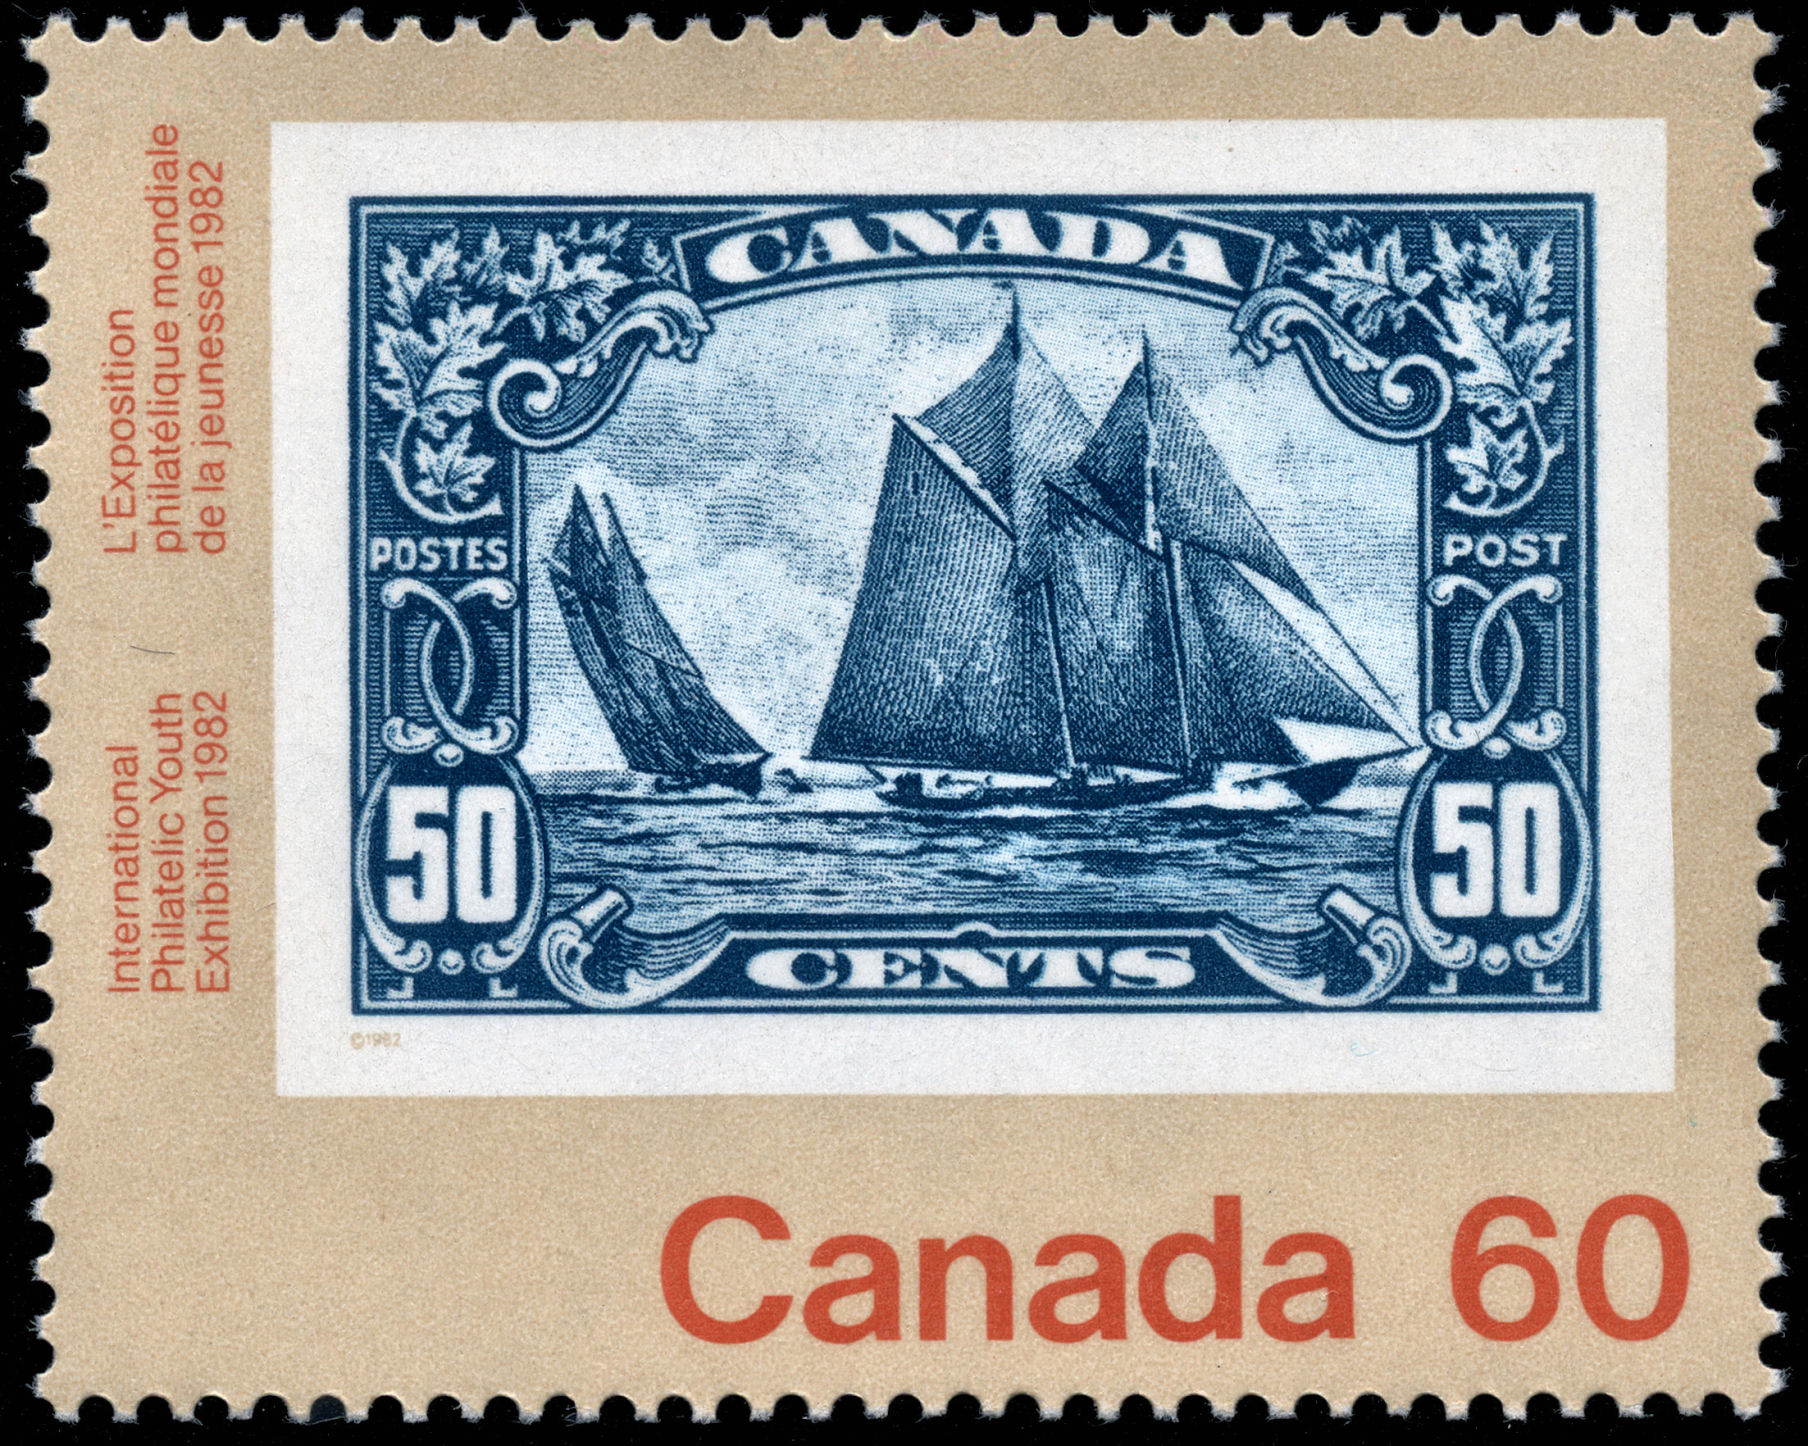 1982 Canada Stamp - stamp on stamp - Bluenose